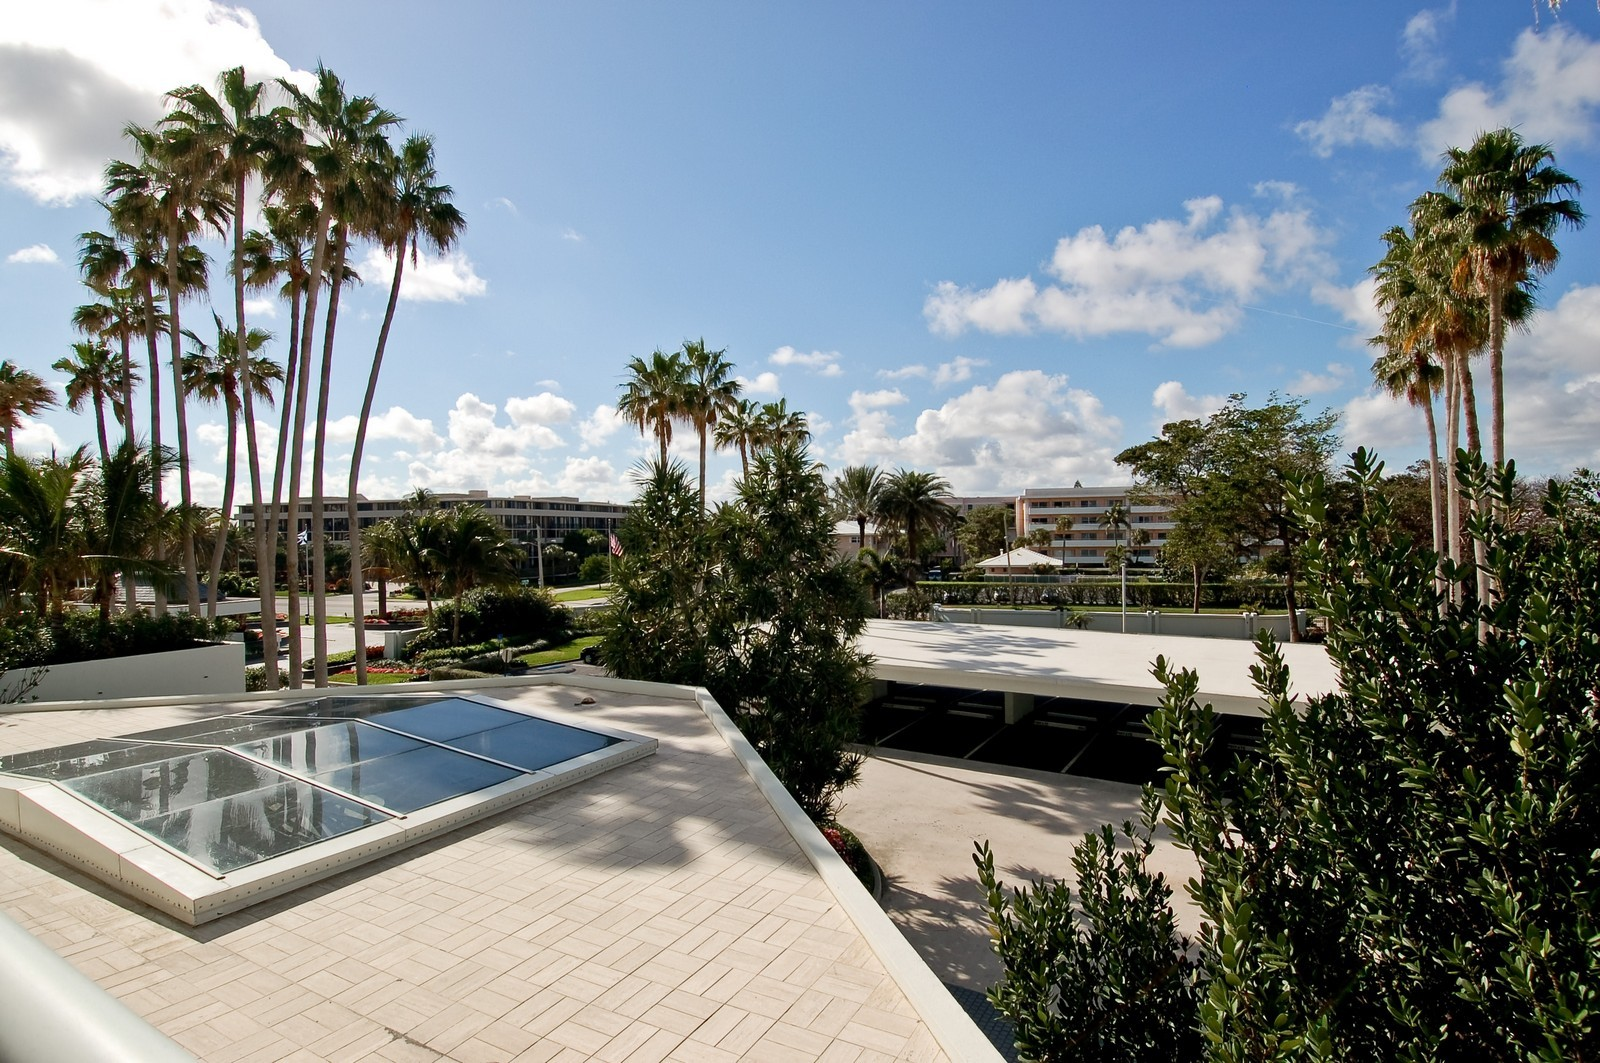 Real Estate Photography - 1400 S Ocean Blvd, Unit N1103-1104, Boca Raton, FL, 33432 - View